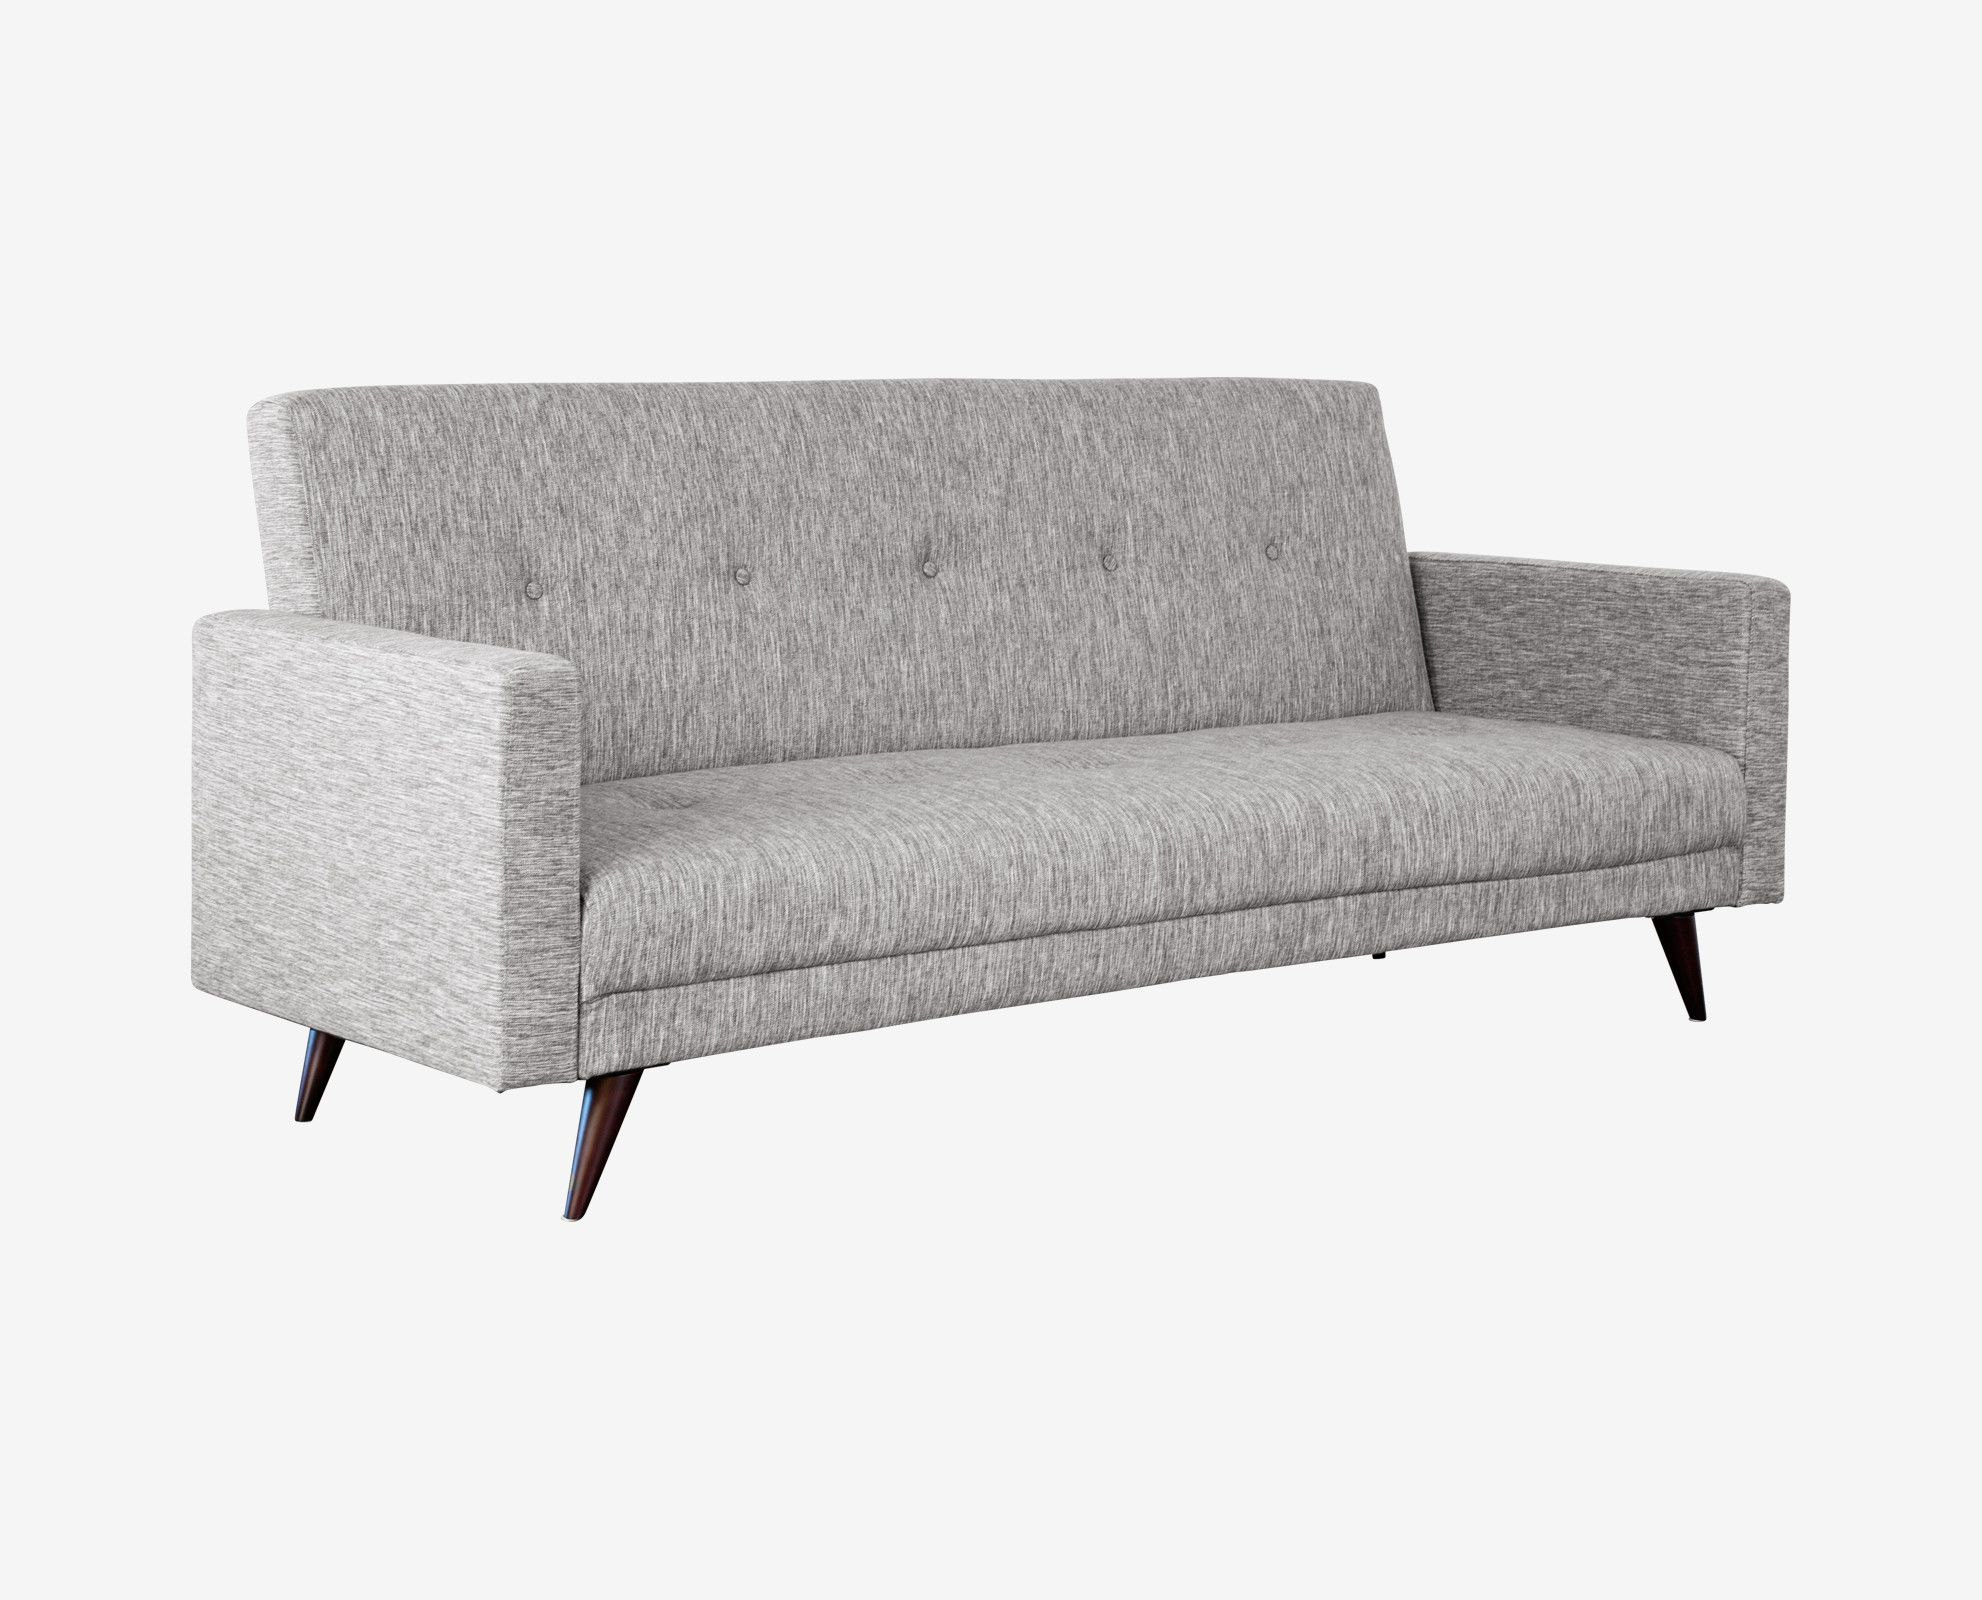 Button Tufted Modern Nordic Style Daybed Couch Modern Couch Convertible Sofa Daybed Couch